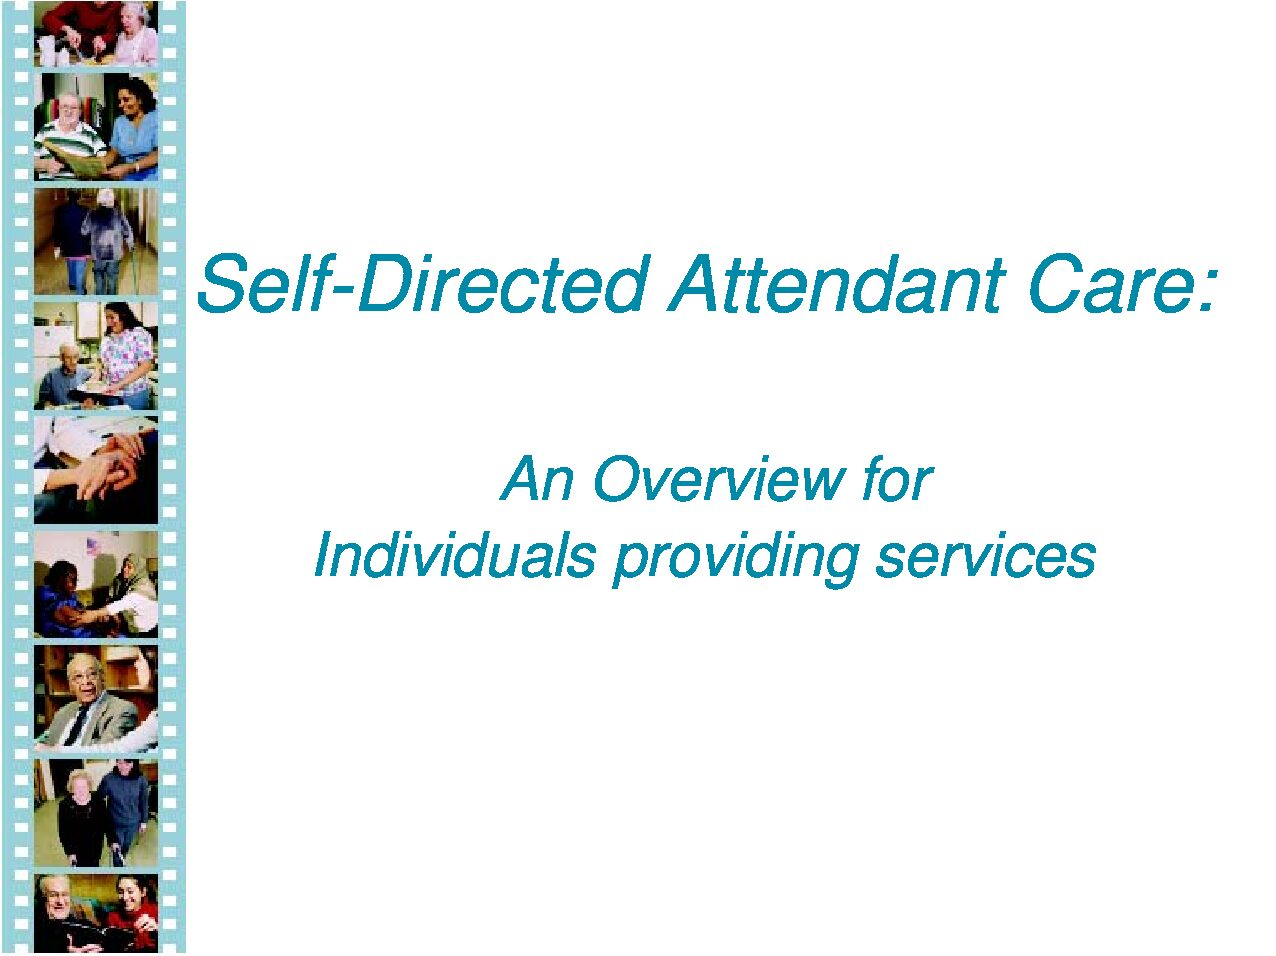 Self-Directed Attendant Care: An Overview for Individuals Providing Services